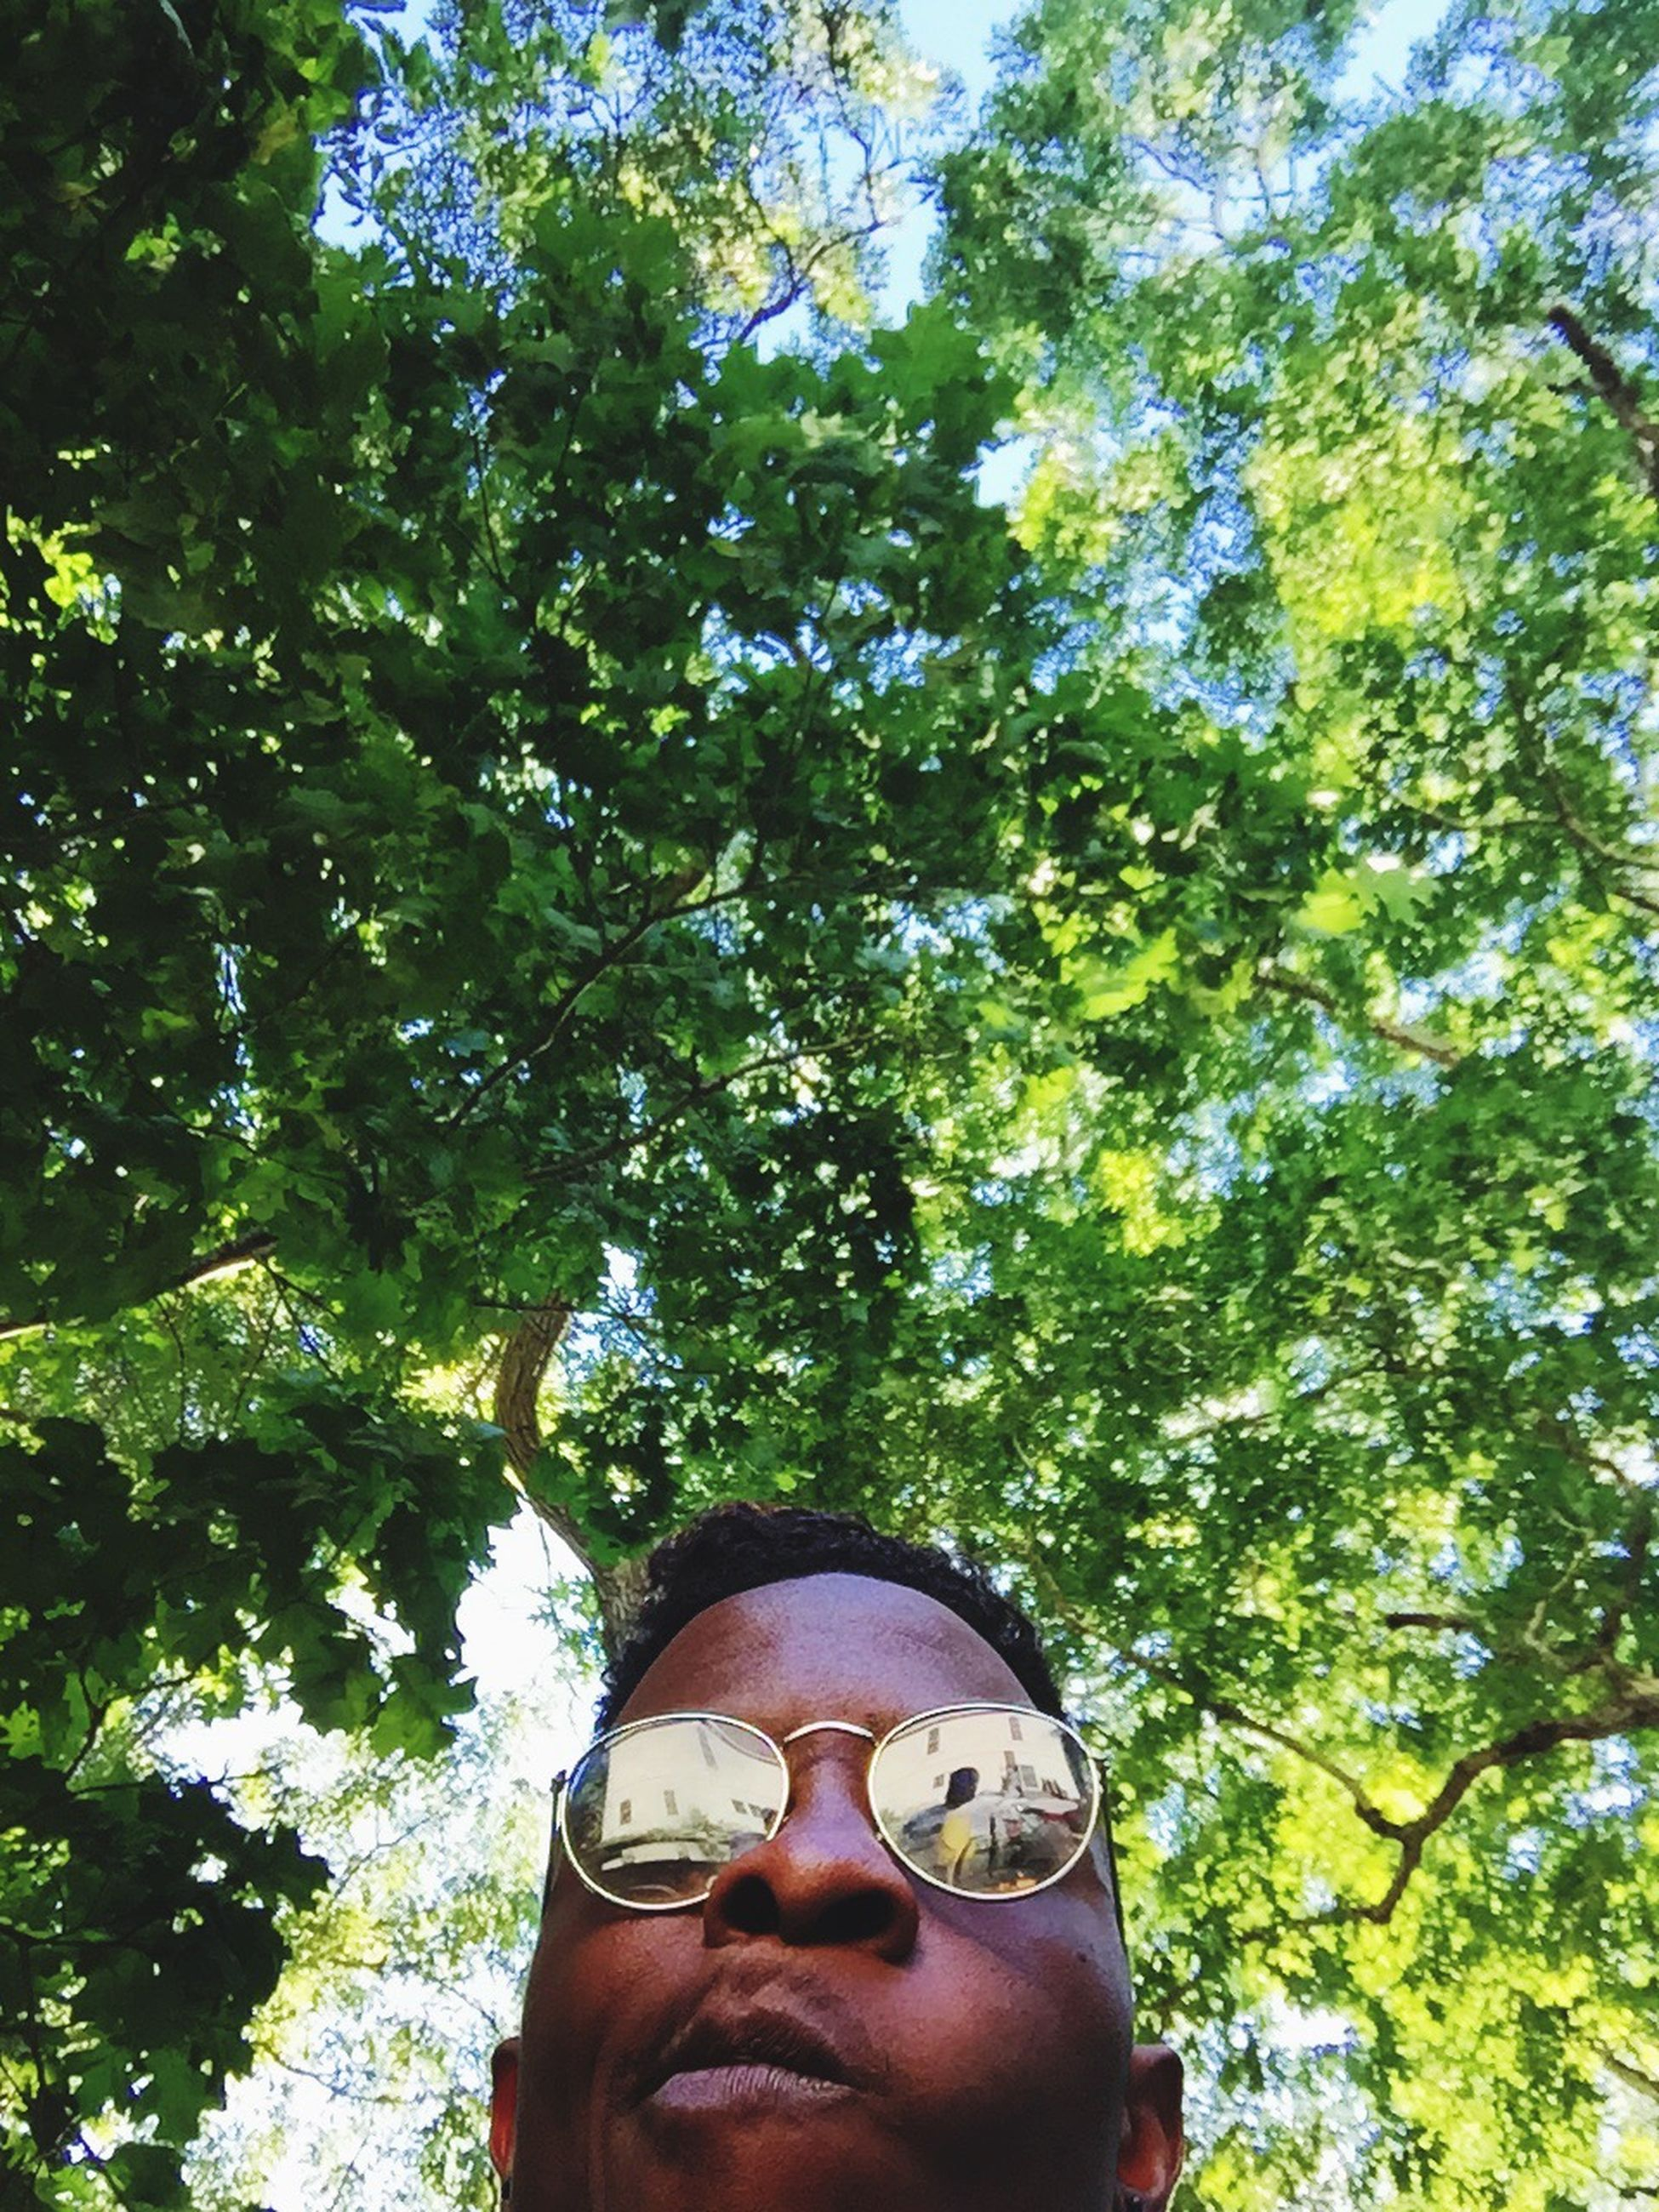 tree, one person, sunglasses, real people, growth, branch, day, attitude, eyeglasses, nature, outdoors, young adult, close-up, people